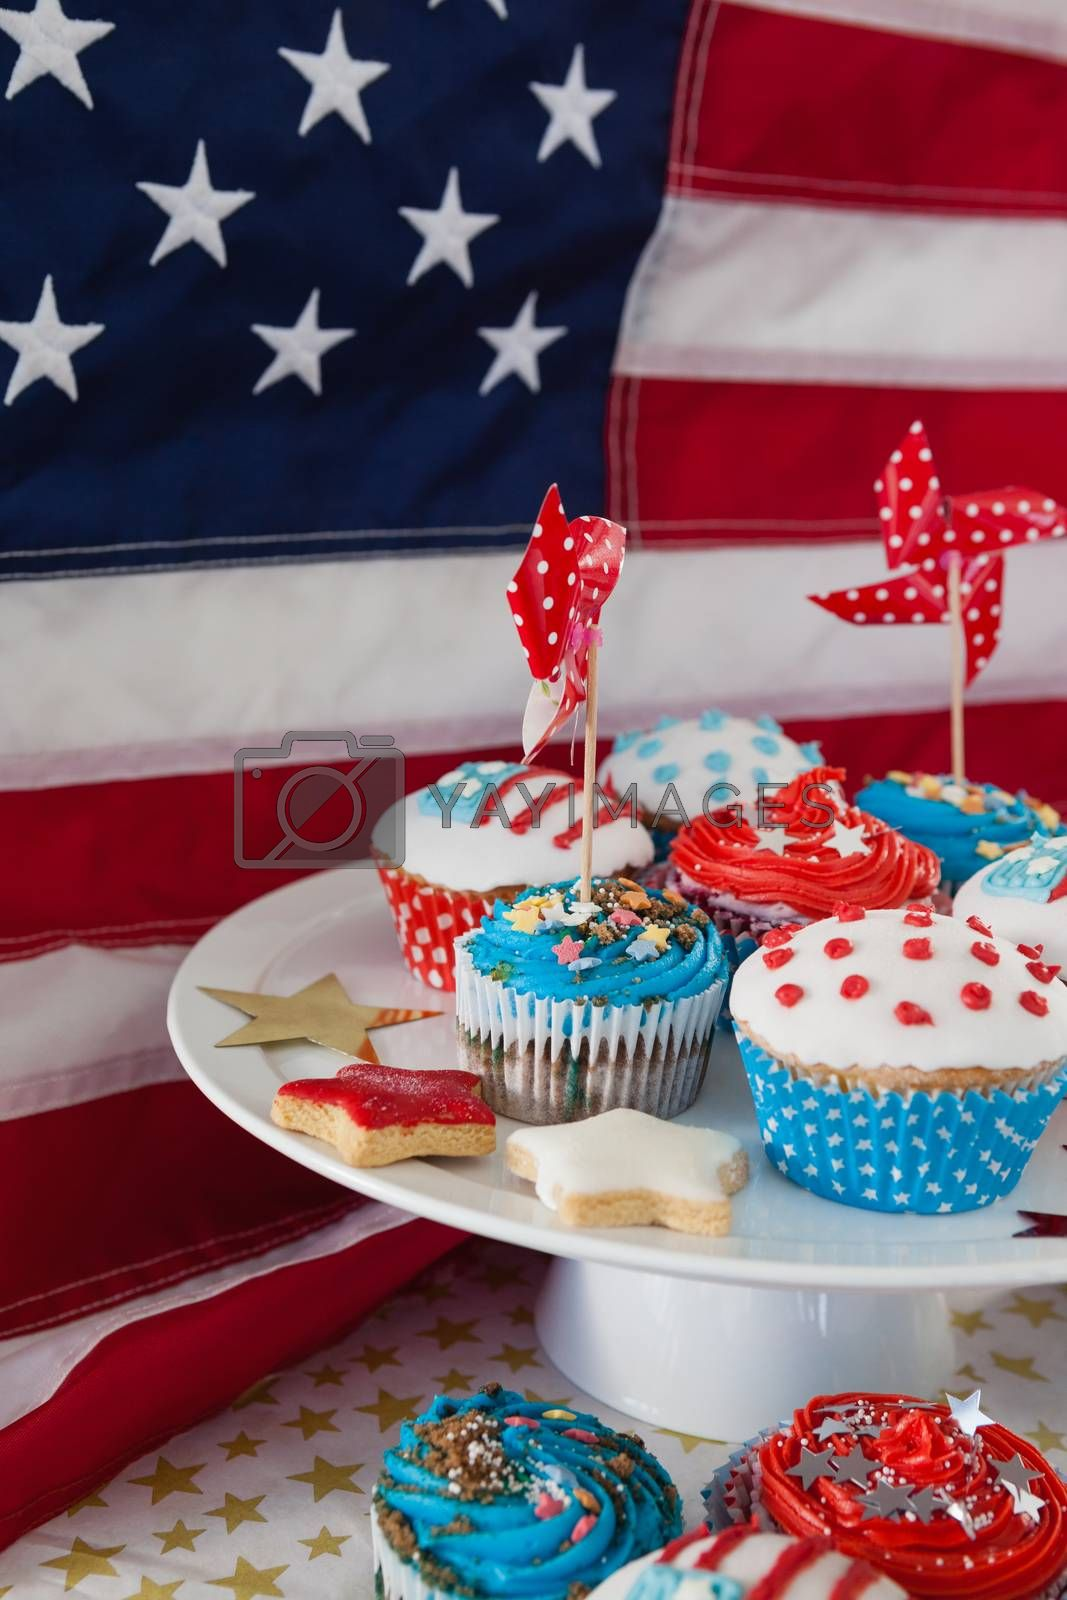 Decorated cupcakes with 4th july theme against American flag